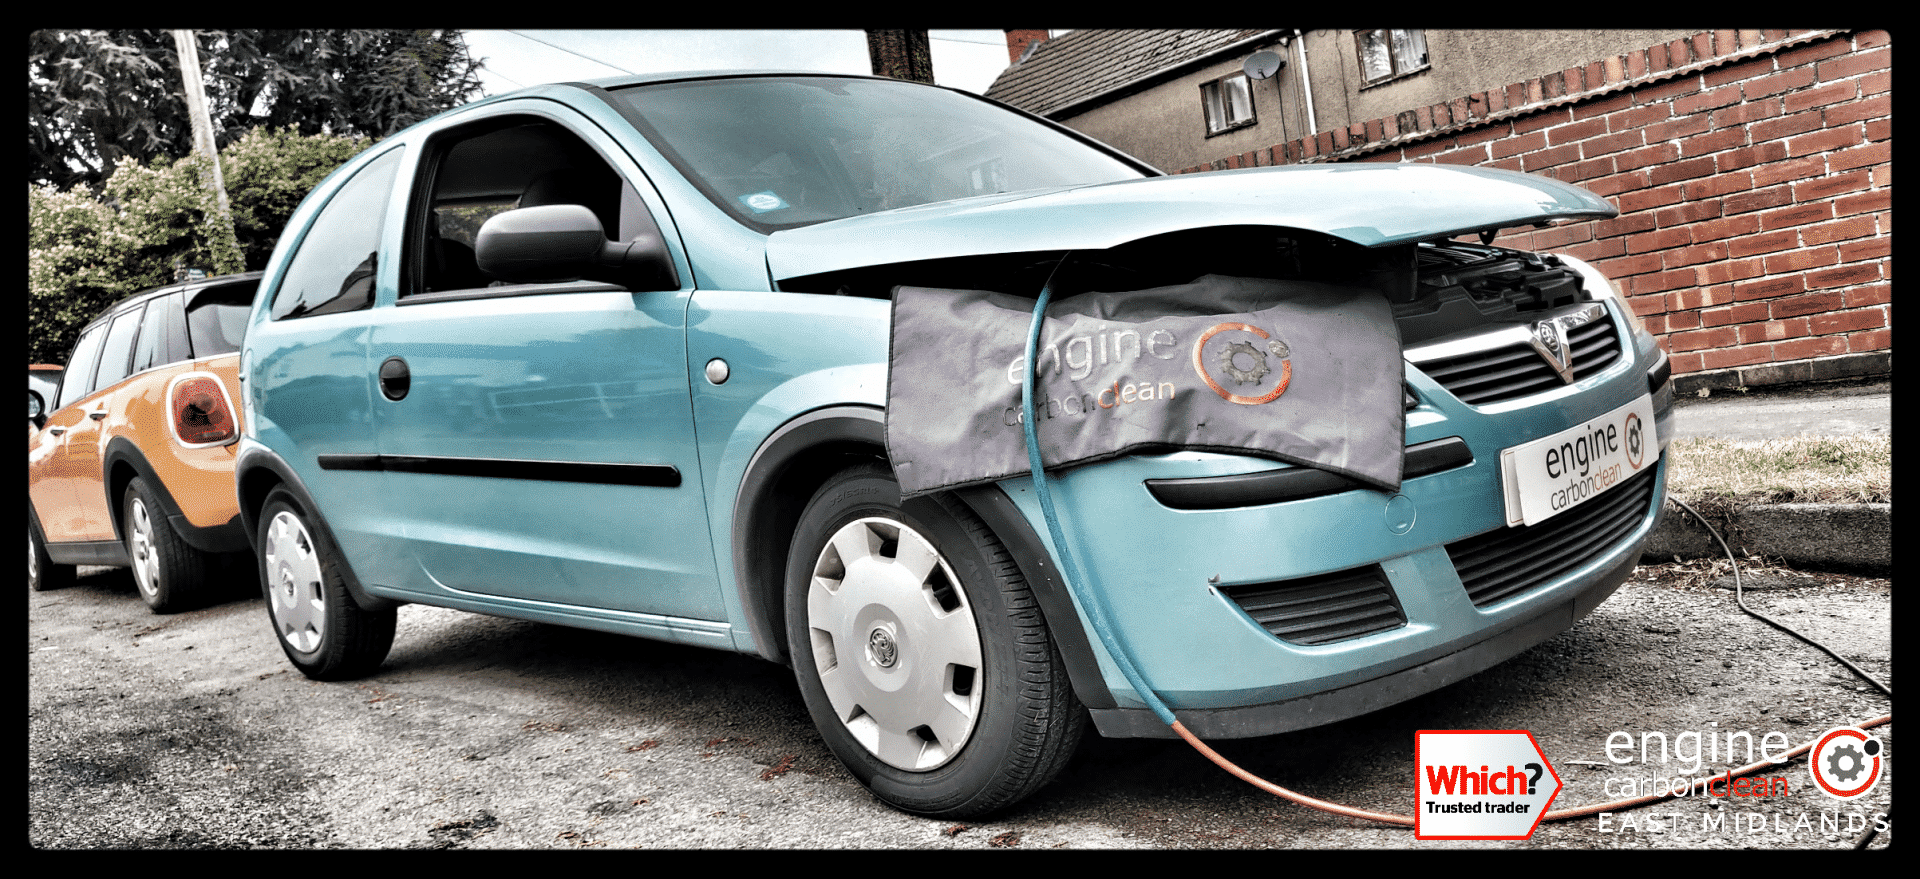 Diagnostic Consultation and Engine Carbon Clean - 17 yr old Vauxhall Corsa 1.0 petrol (85,603miles)